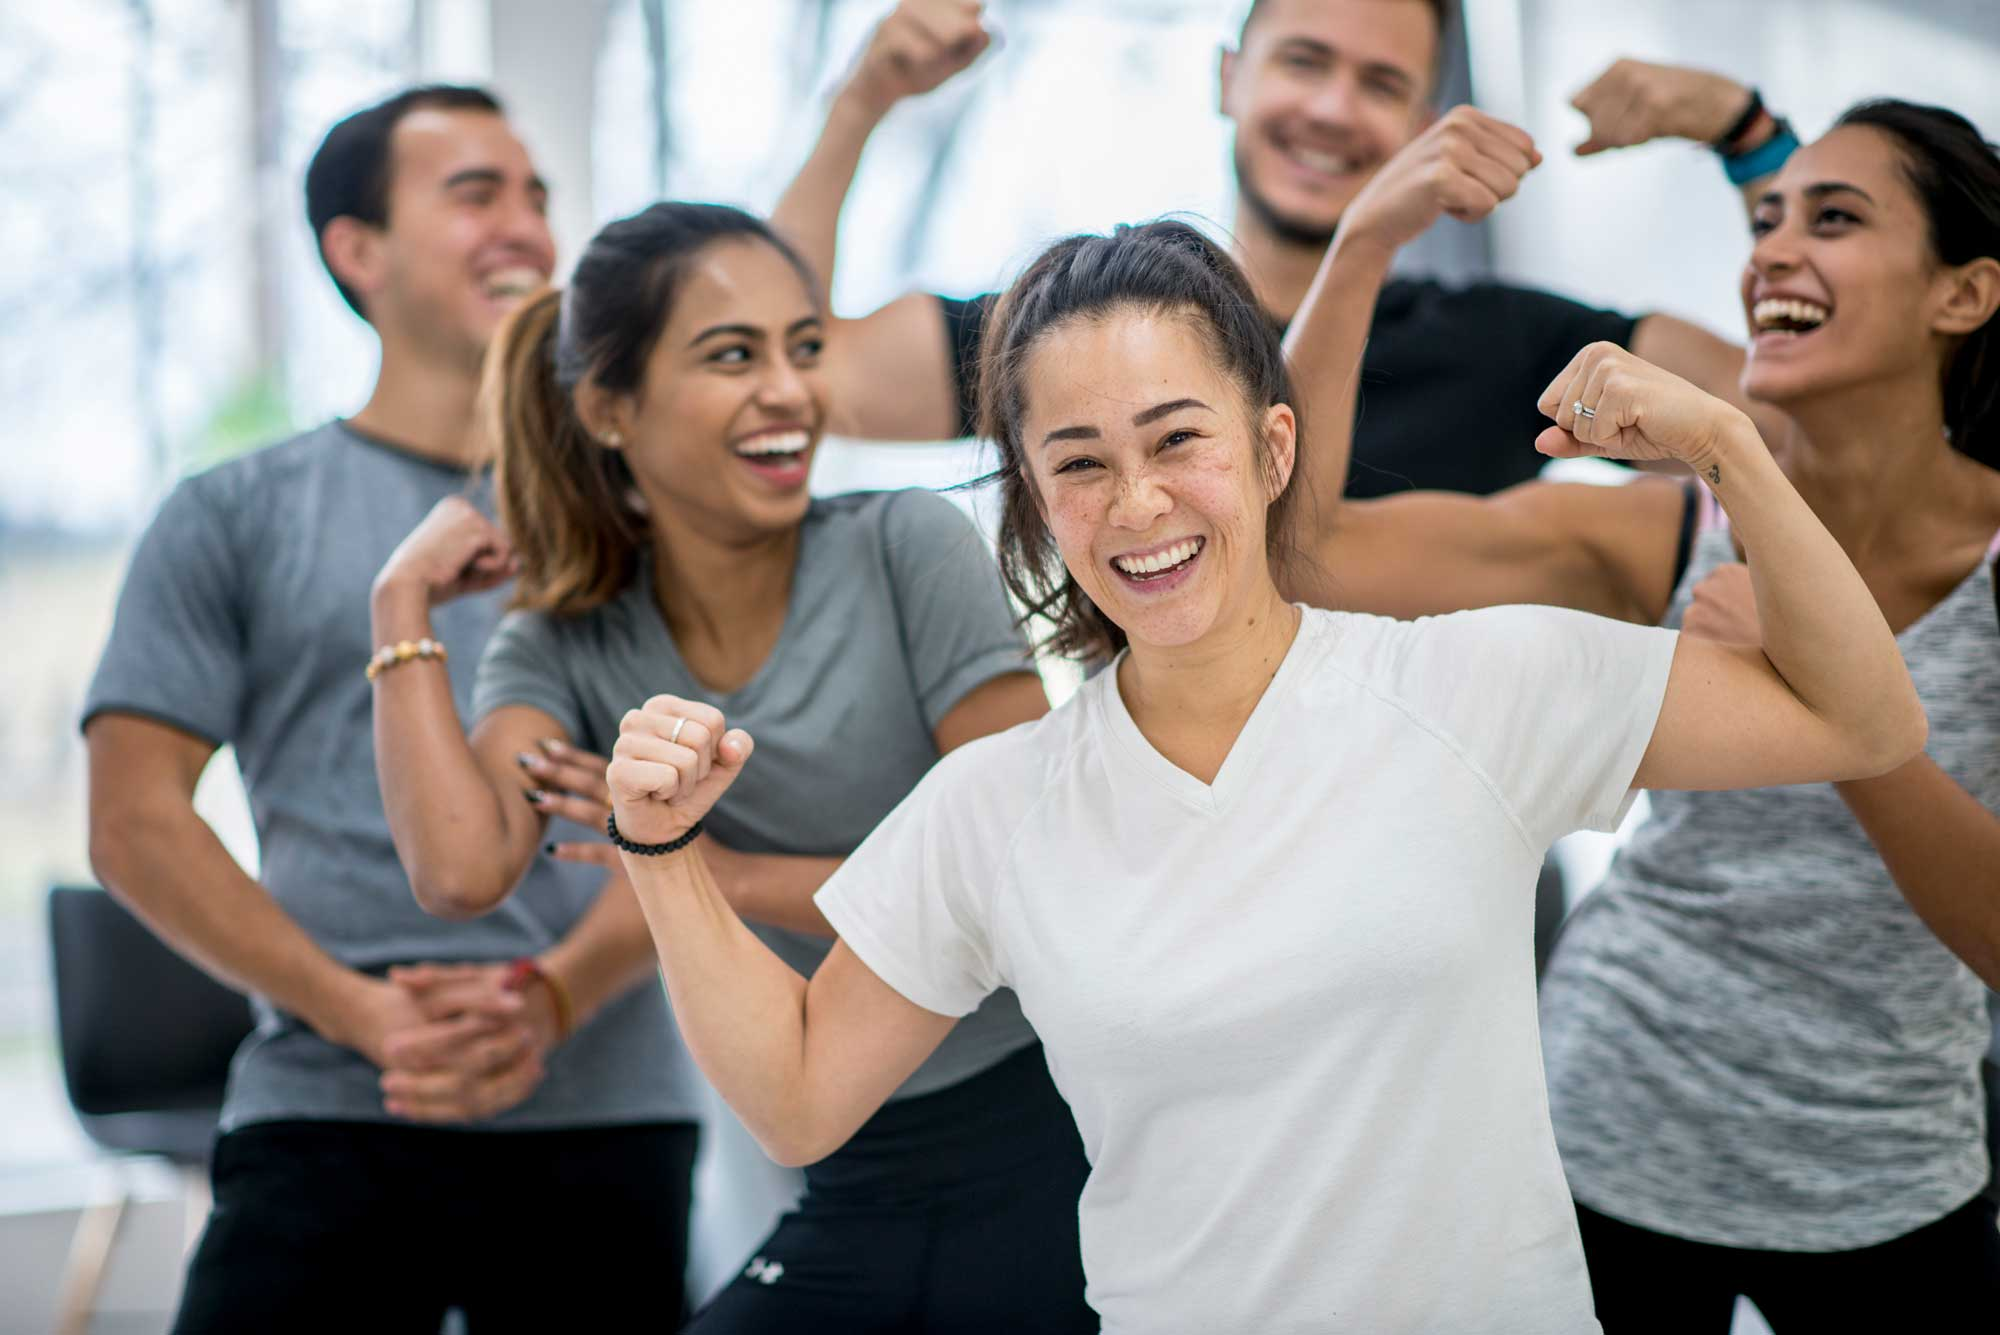 About Texas Family Fitness